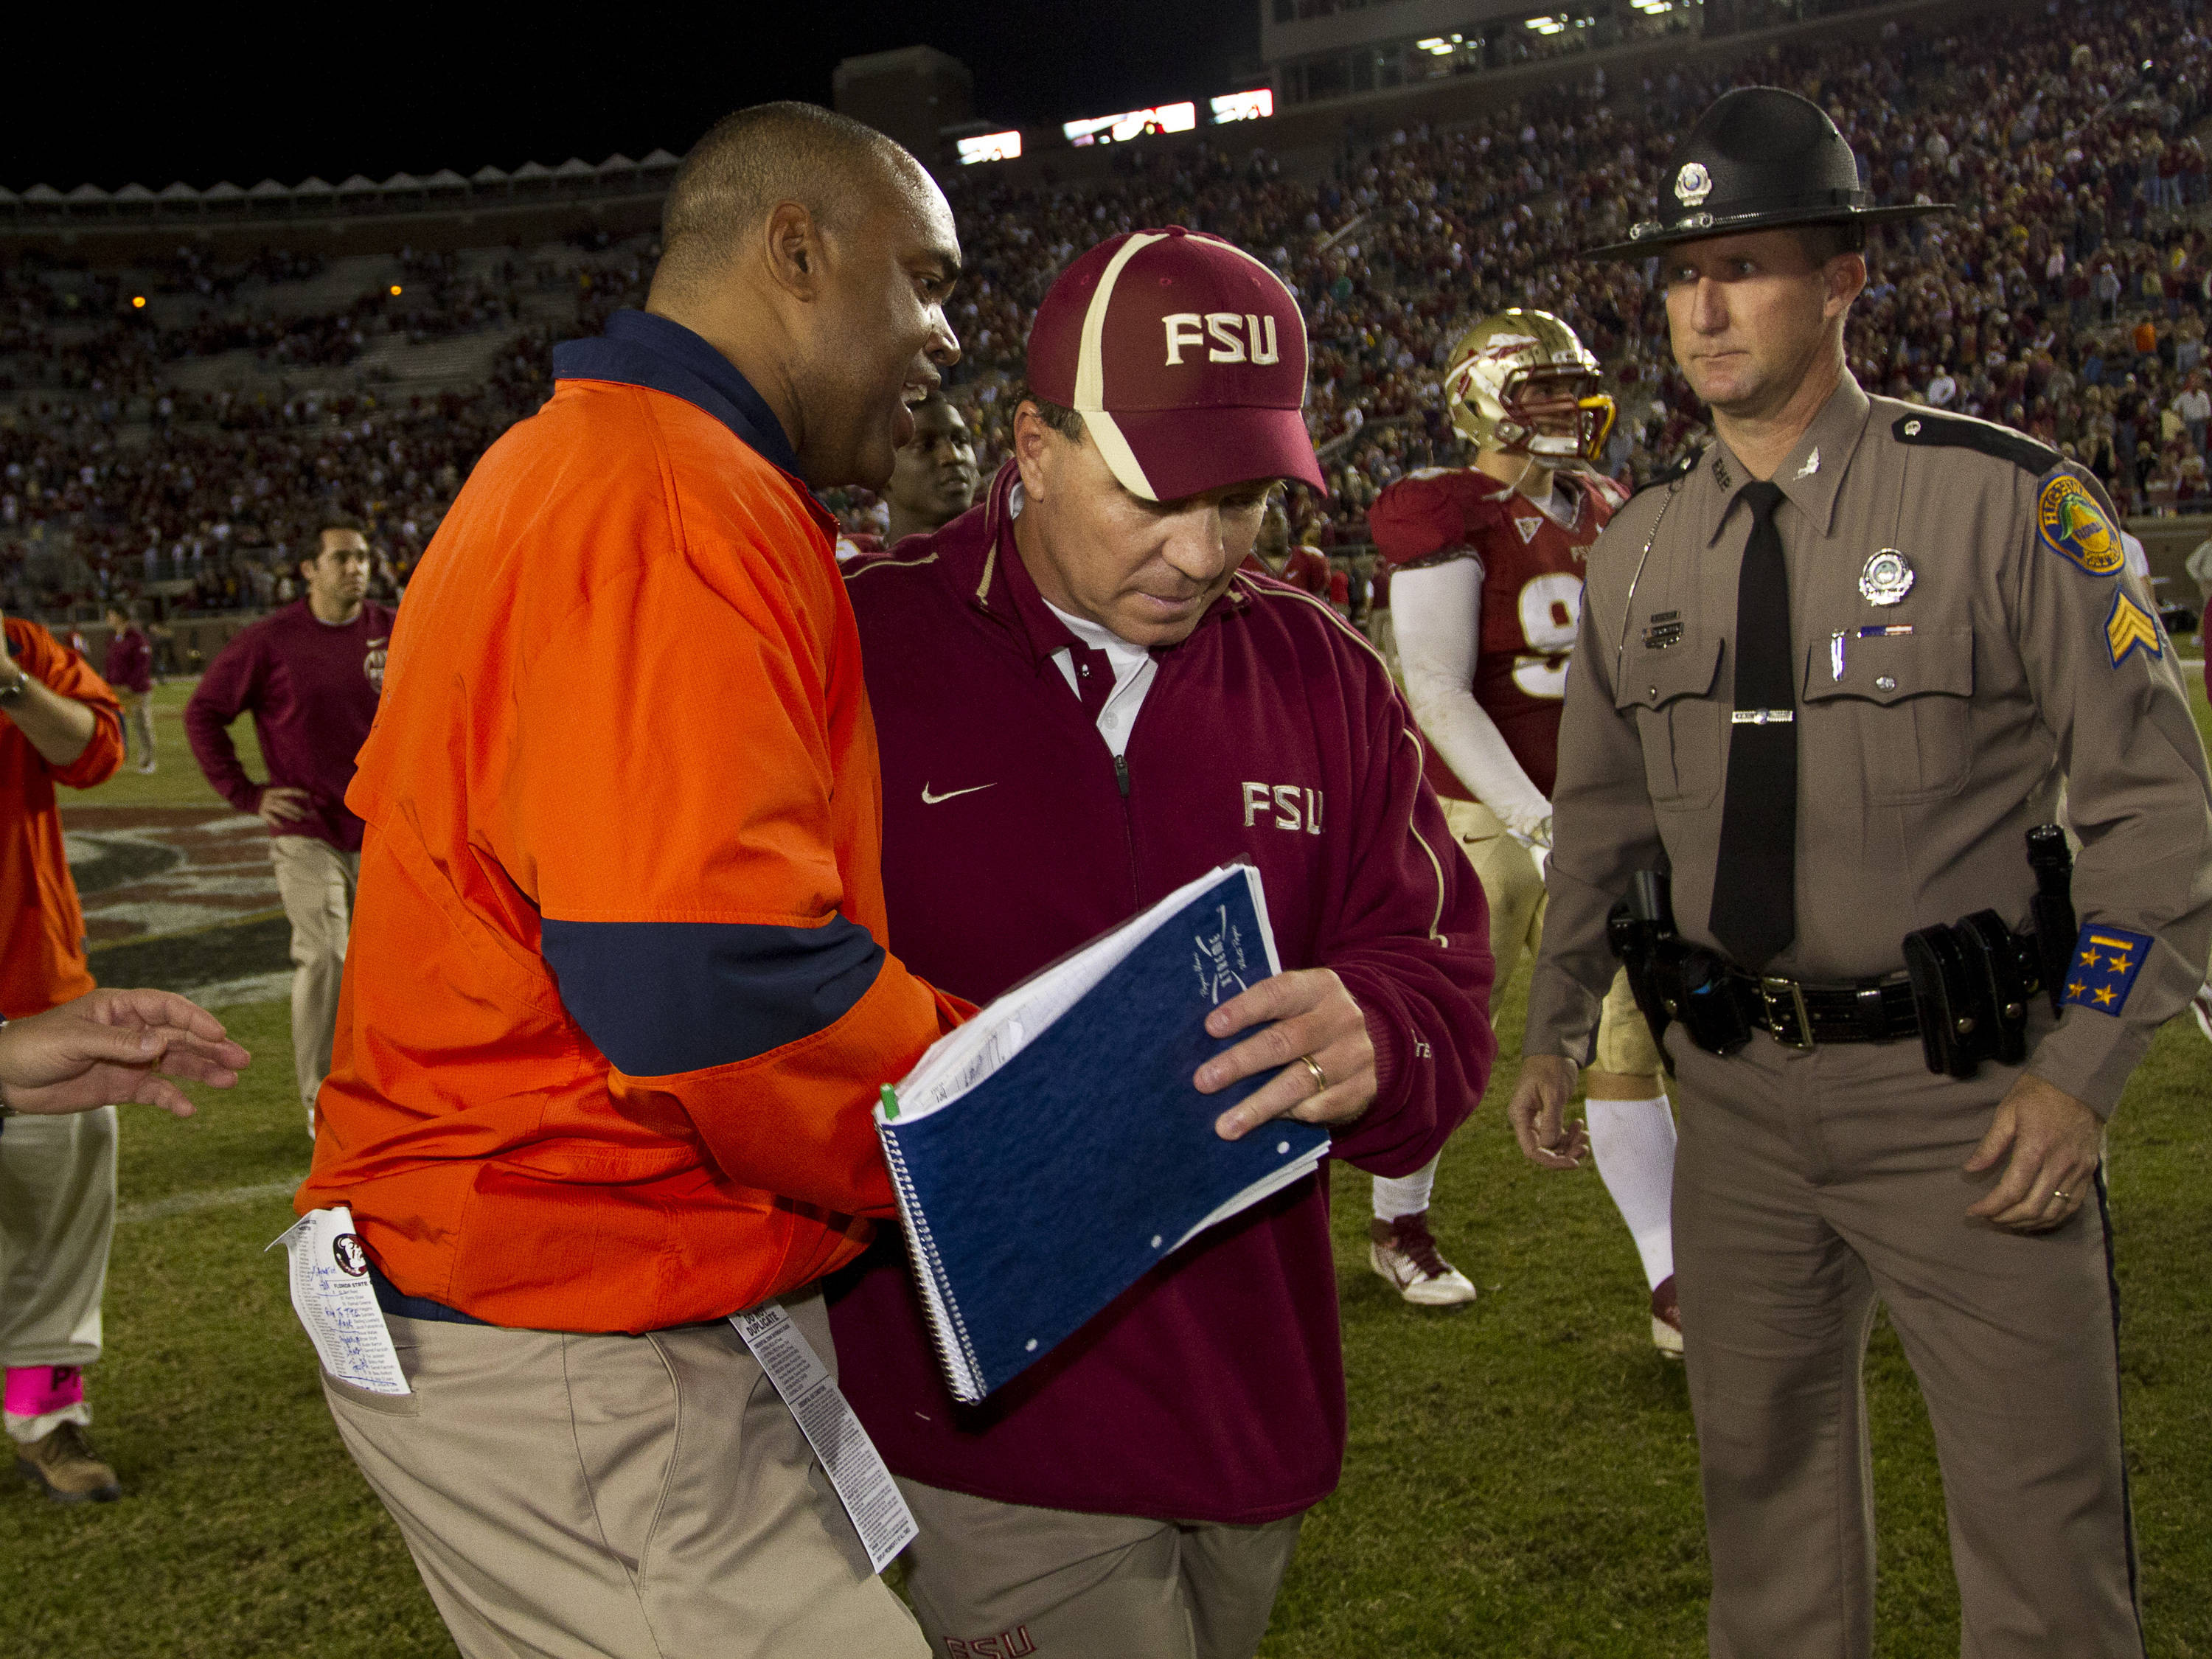 Jimbo Fisher speaks with Virginia's coach after the game against Virginia on November 29, 2011.